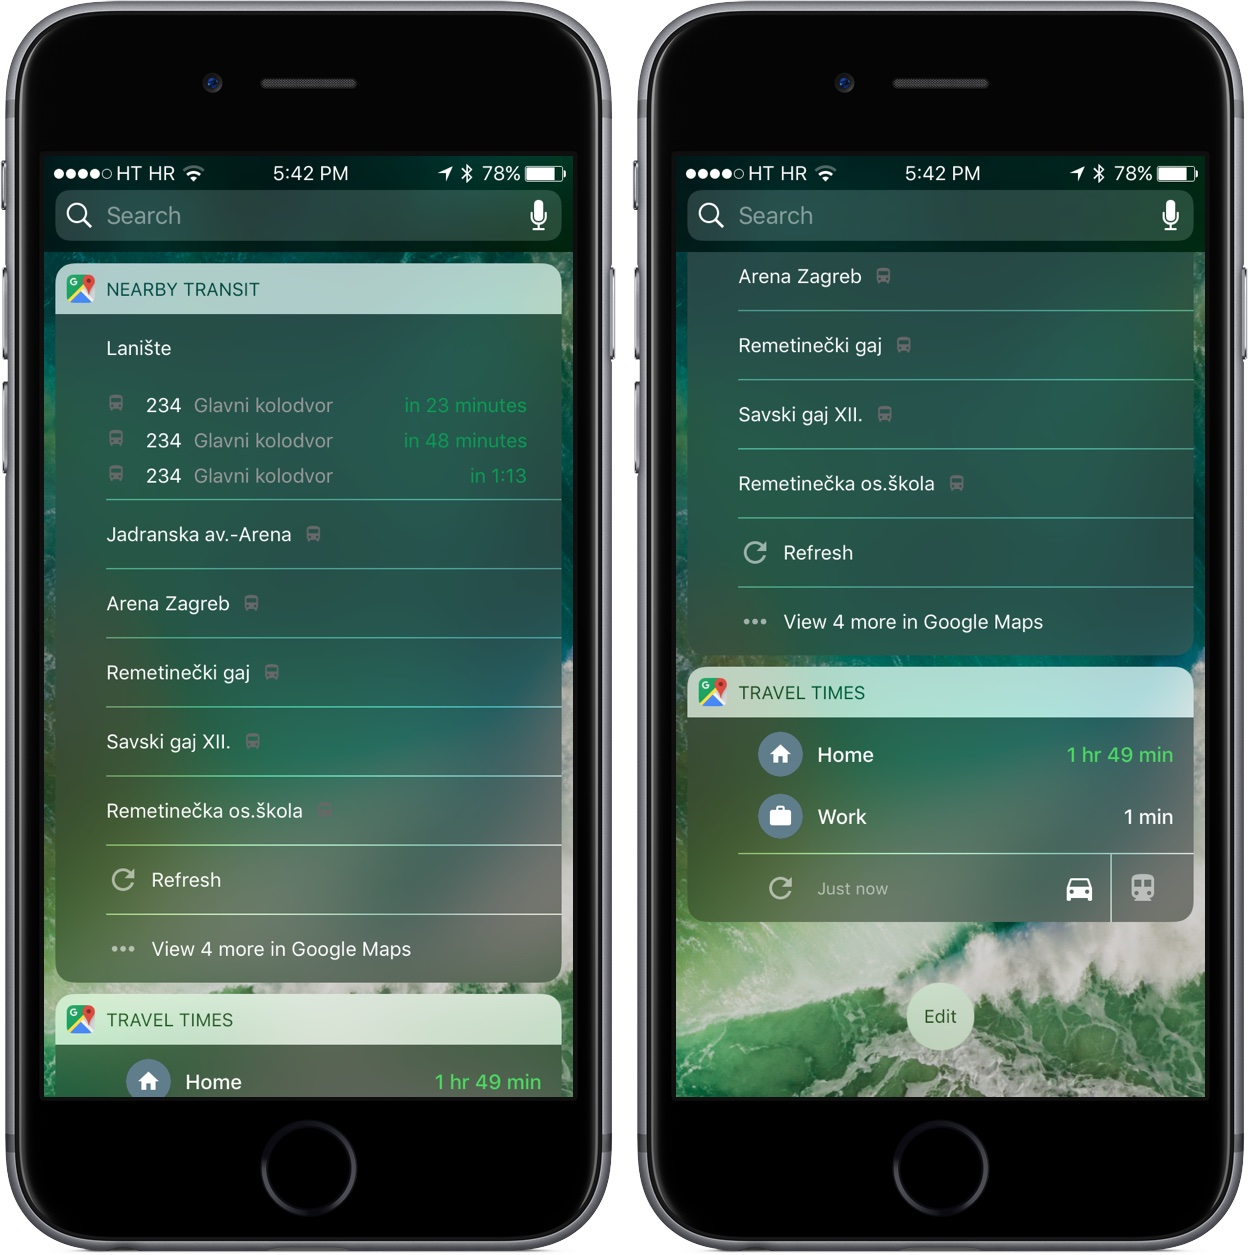 Google Maps for iOS 4.23 iOS 9 widgets iPHone screenshot 001